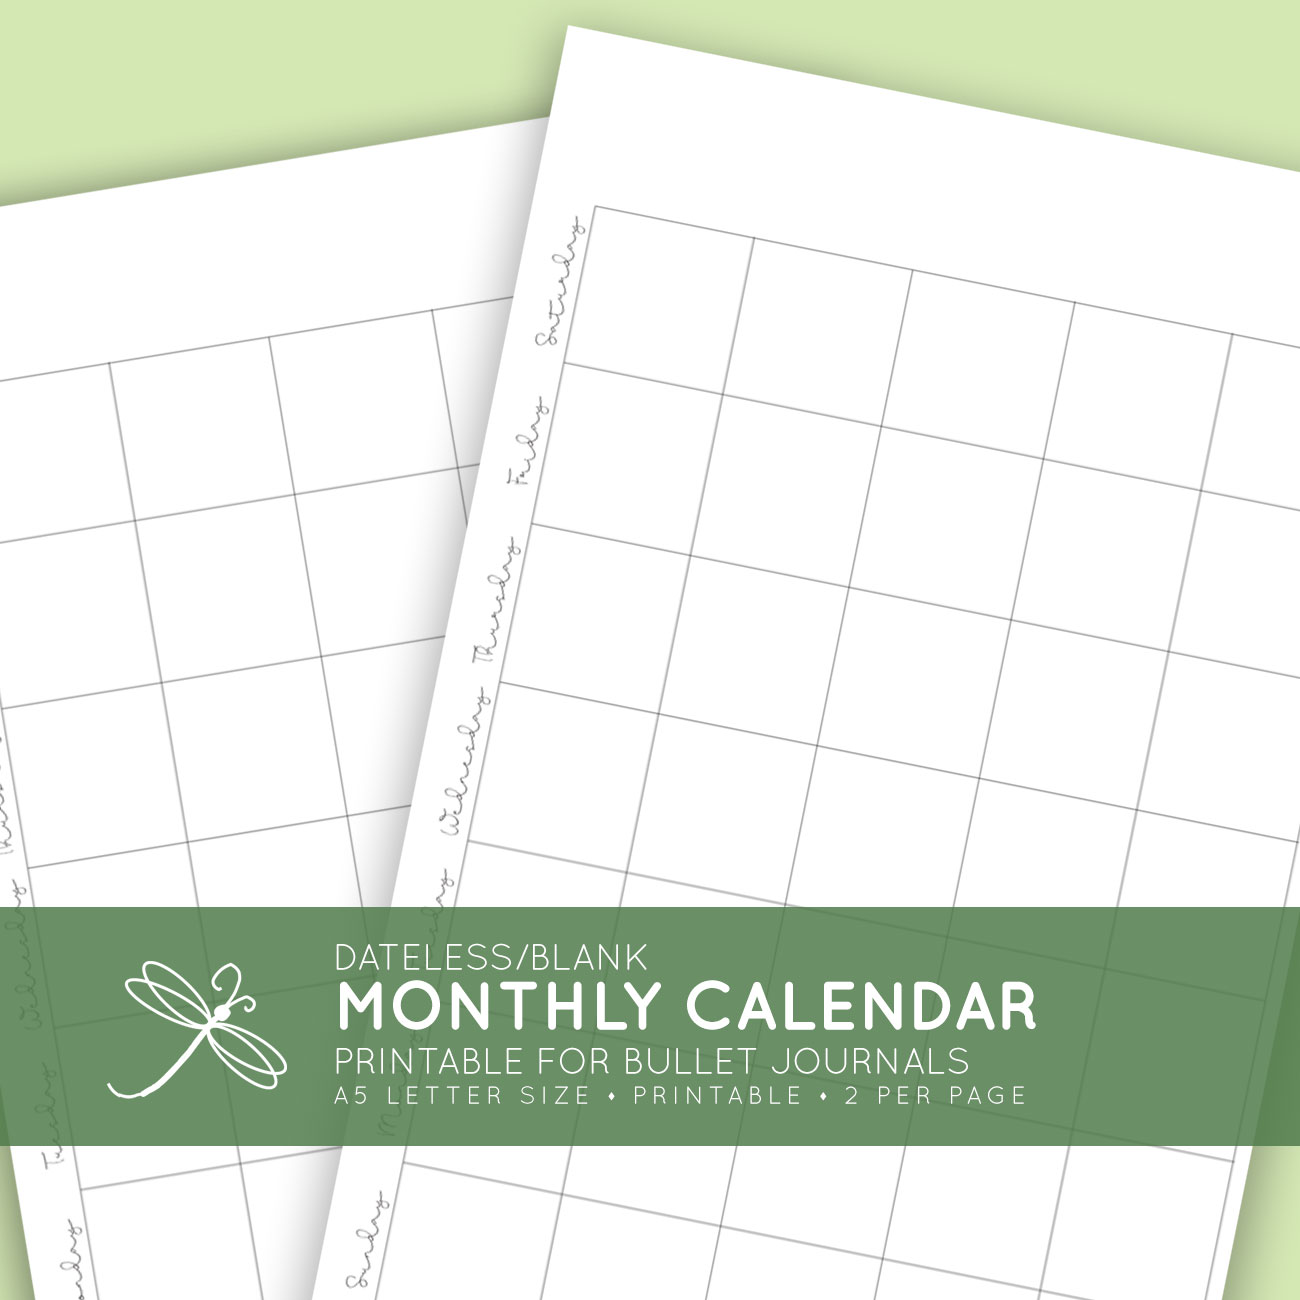 image regarding Printable Monthly Calendars named Blank Every month Printable Calendar